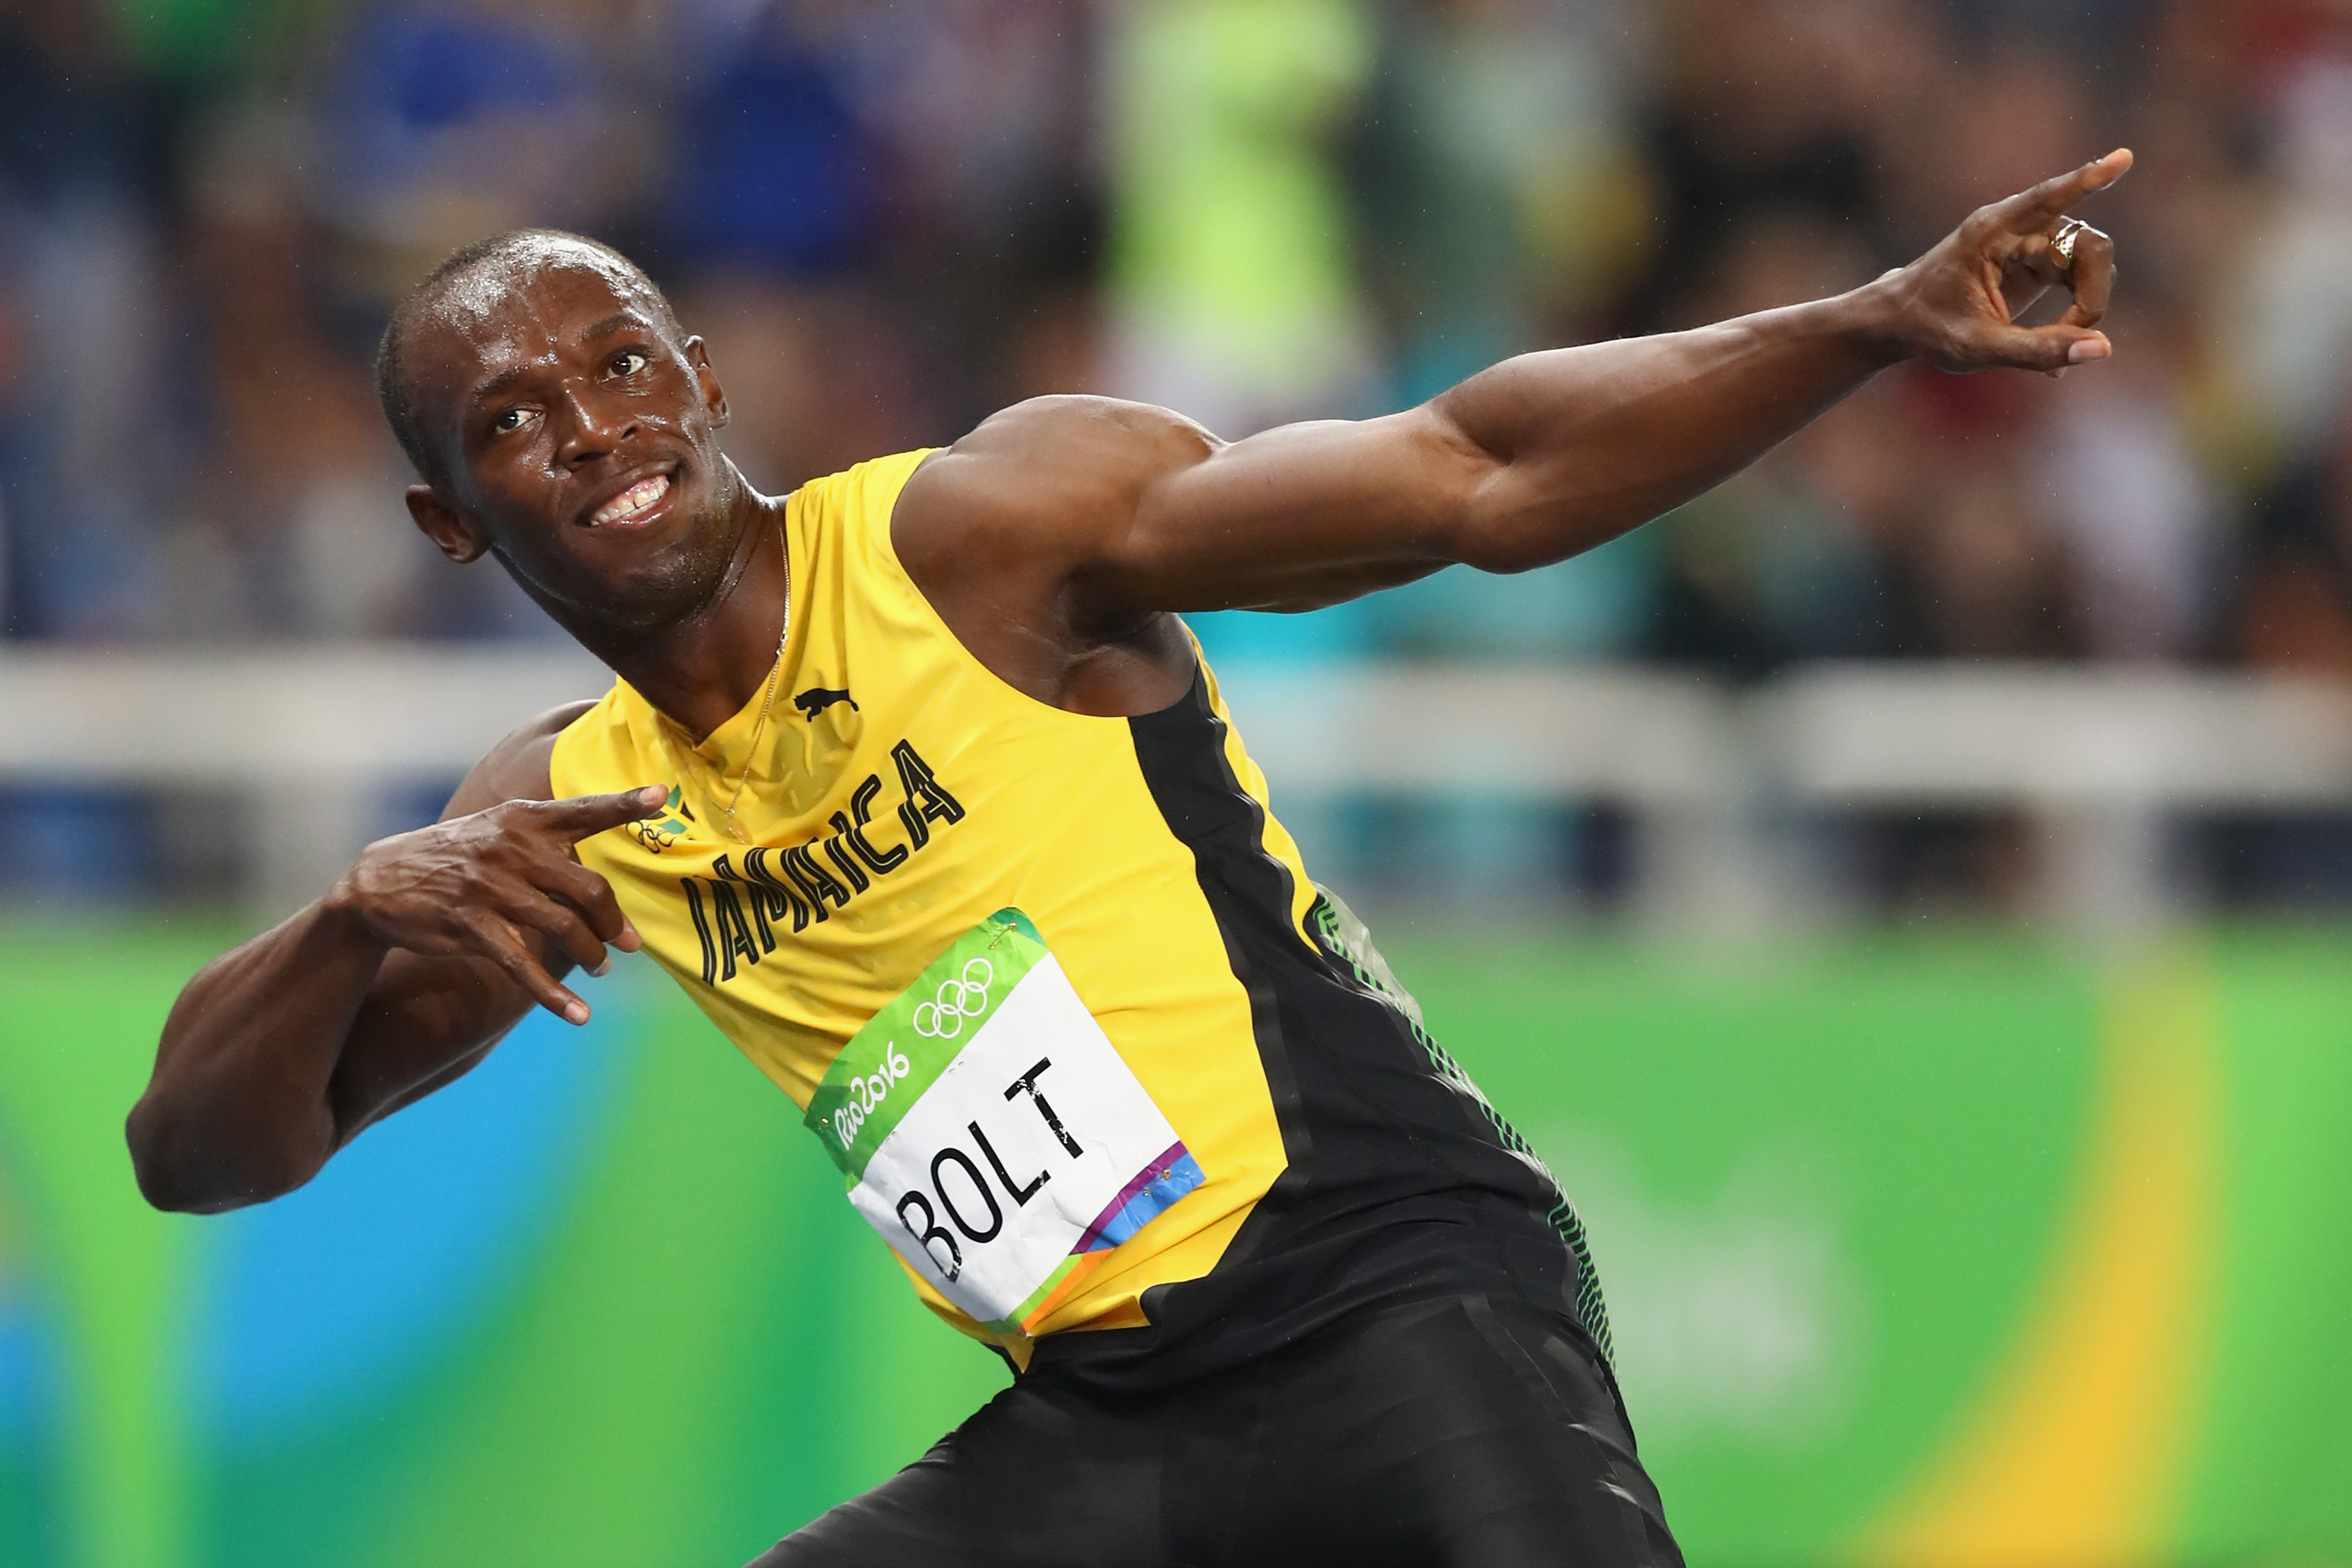 This Is How Much Usain Bolt Earns And What He Spends It On boltpose